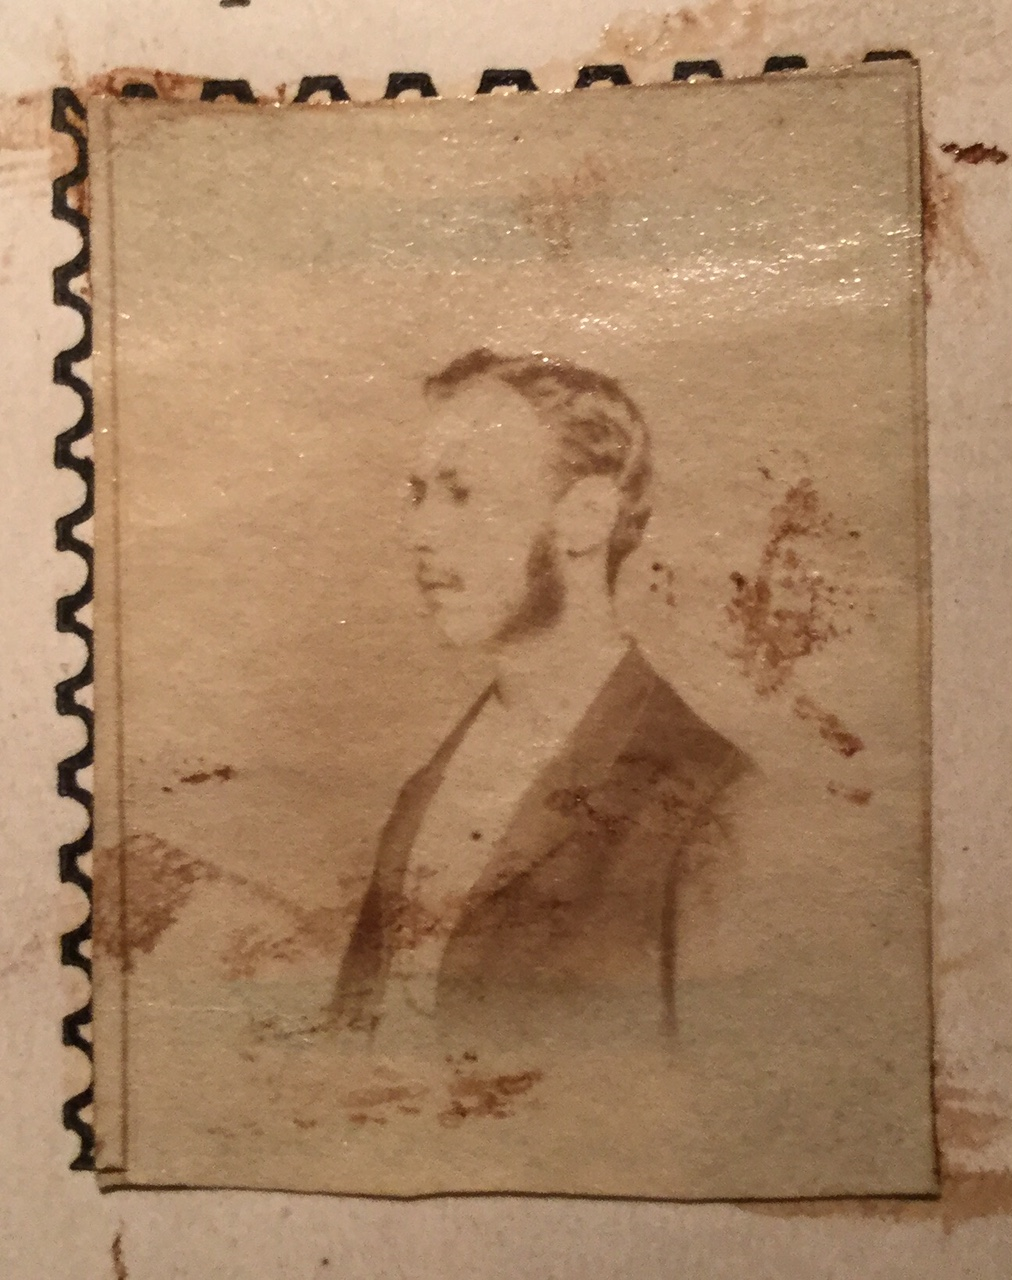 John Walter Scott portrait used as a label to be placed in his Postage Stamp Album copyright 1869, photographed in 2016 from the second edition album of 1870, showing actual use in an album. Sourced from Wikipedia.